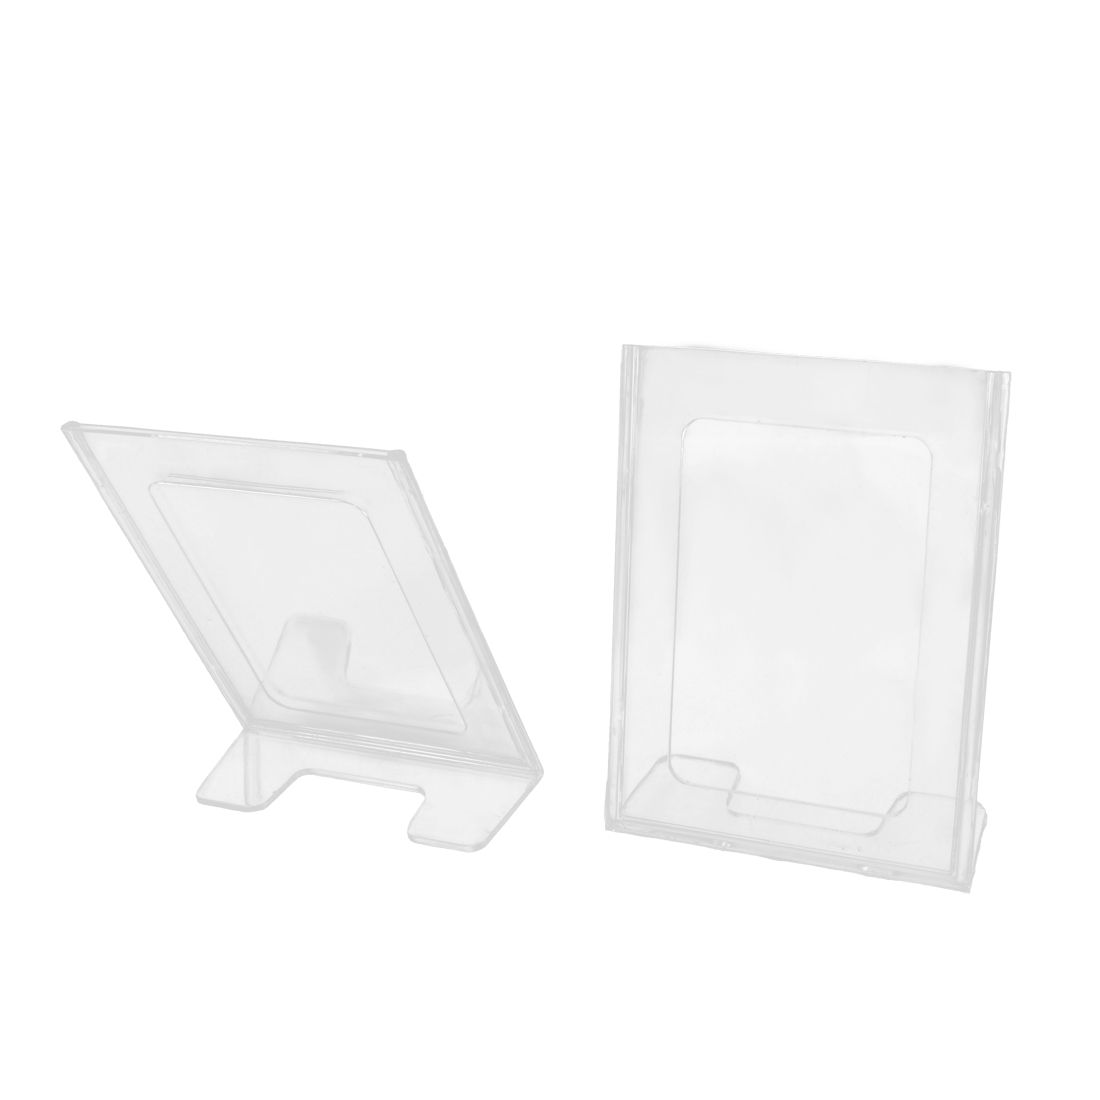 Office L-Shaped Clear Plastic Photos Display Meeting Card Holder Stand 2 Pcs